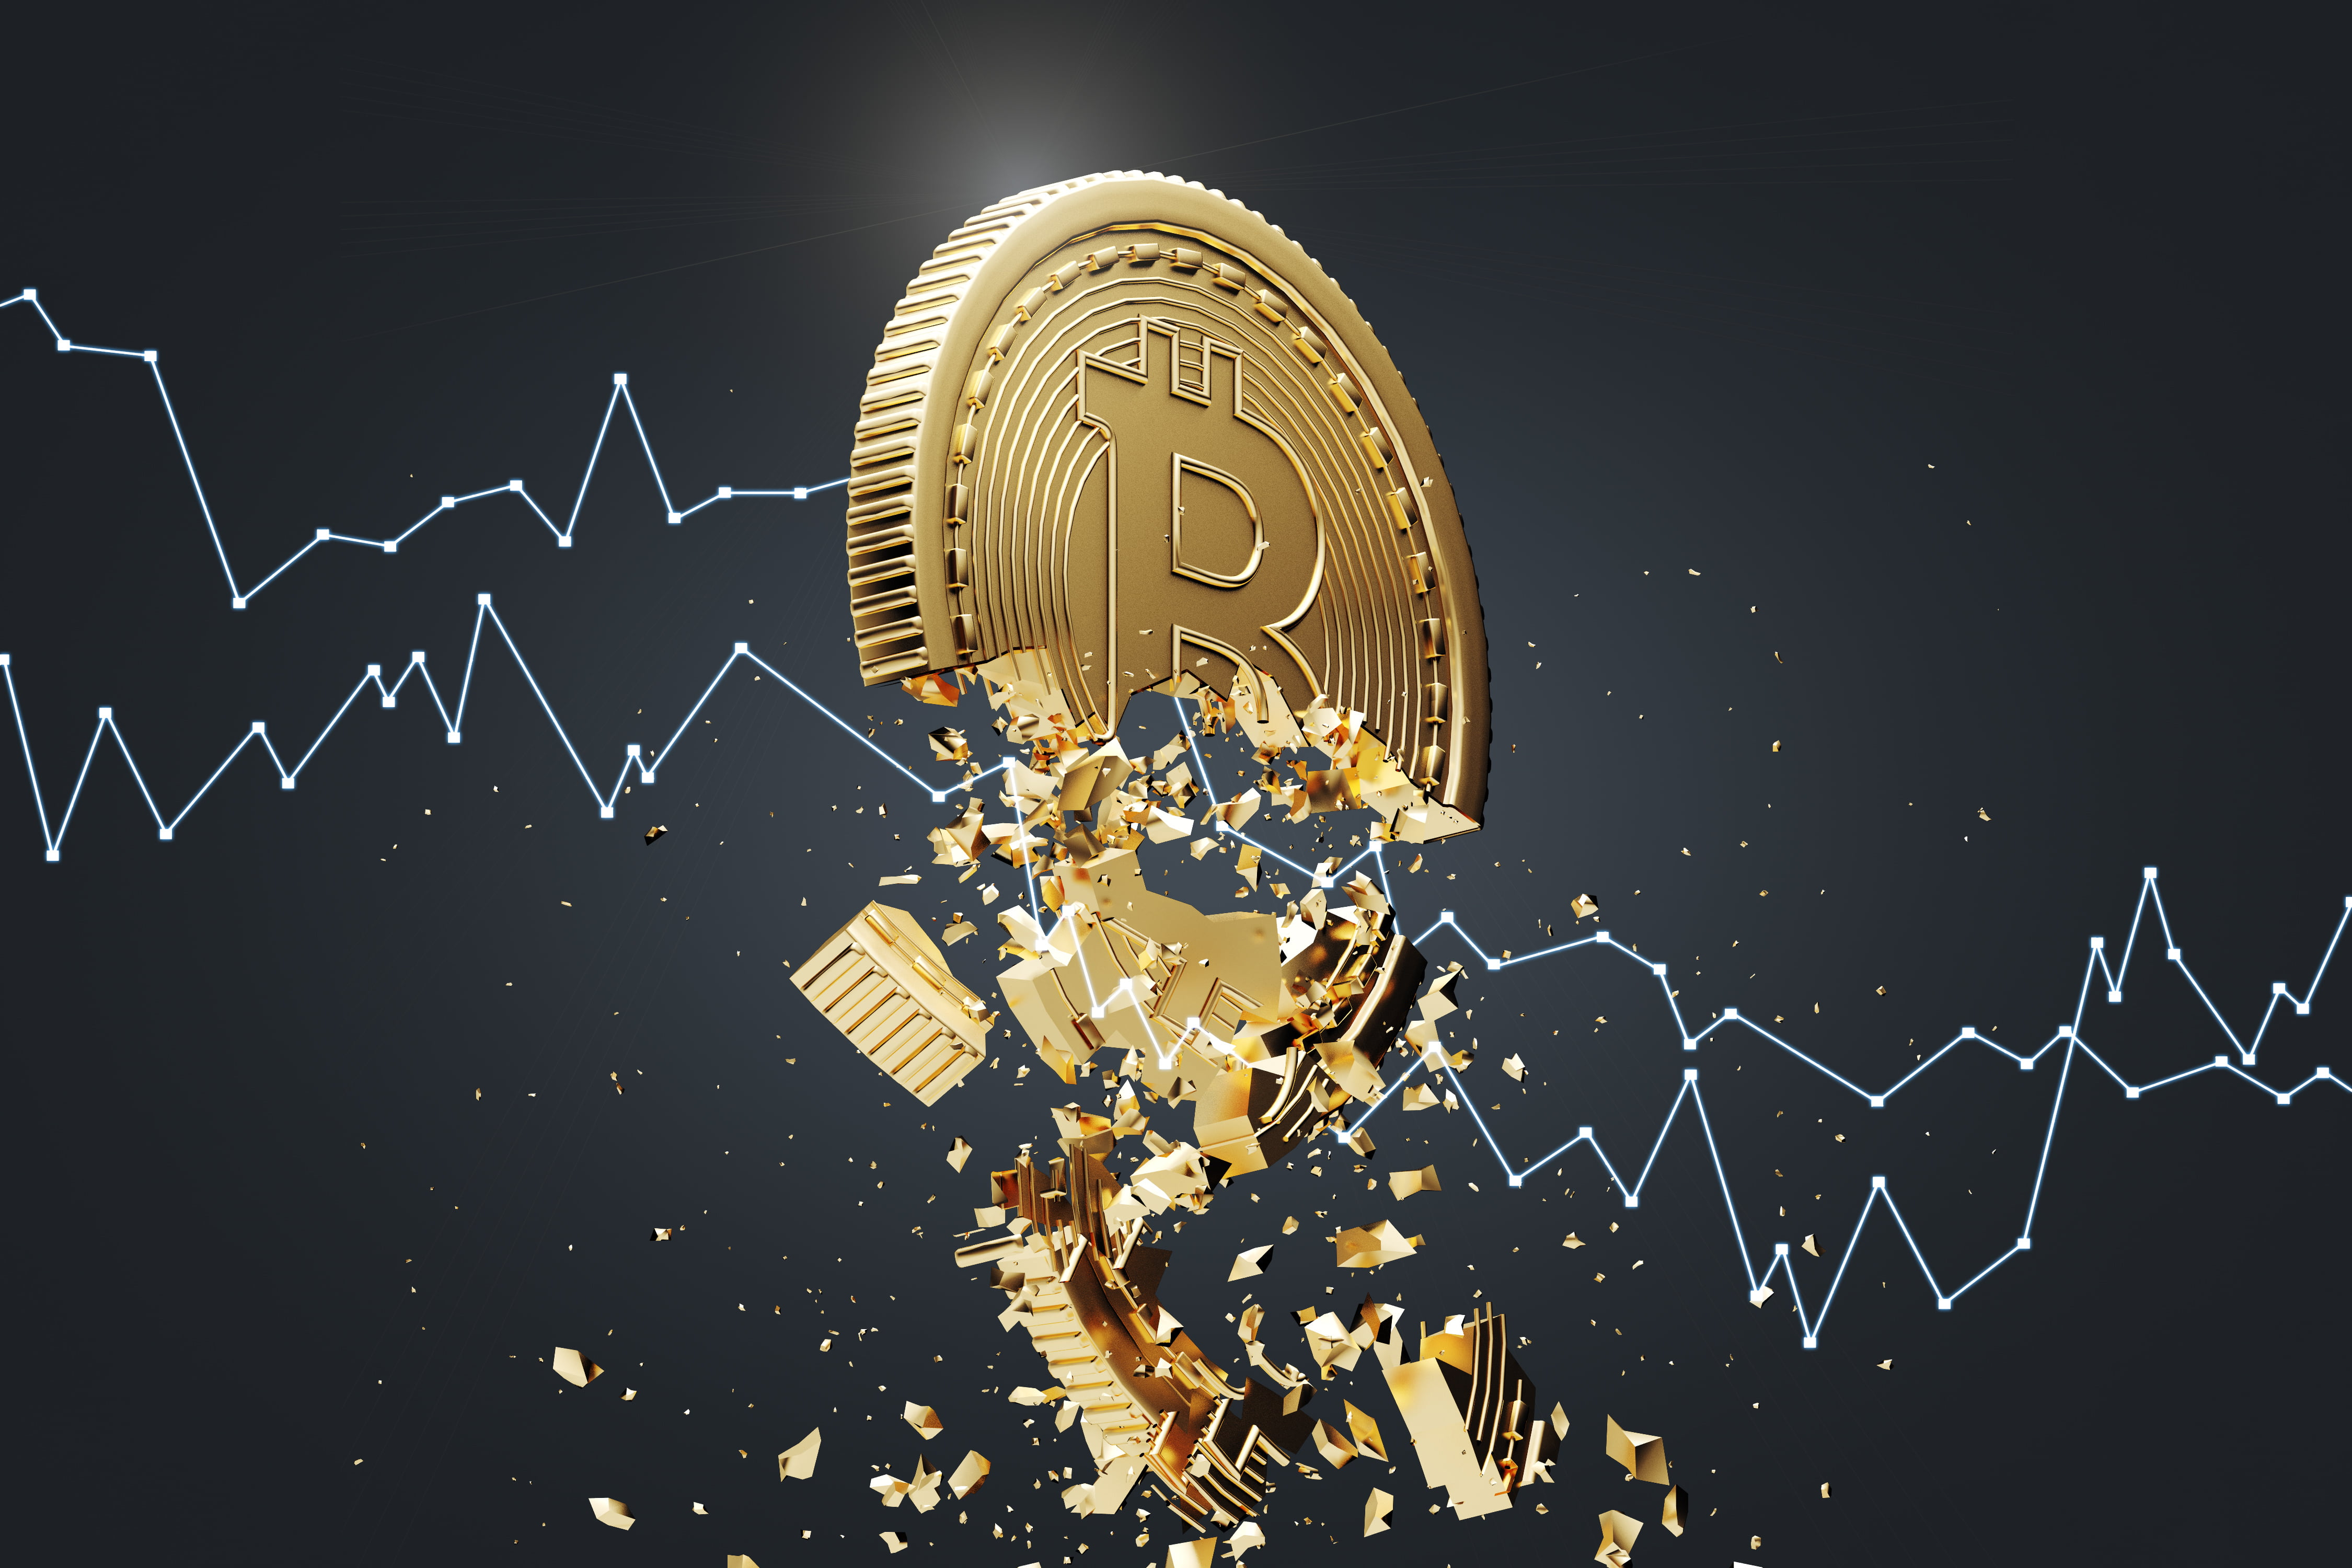 whats bitcoin worth now